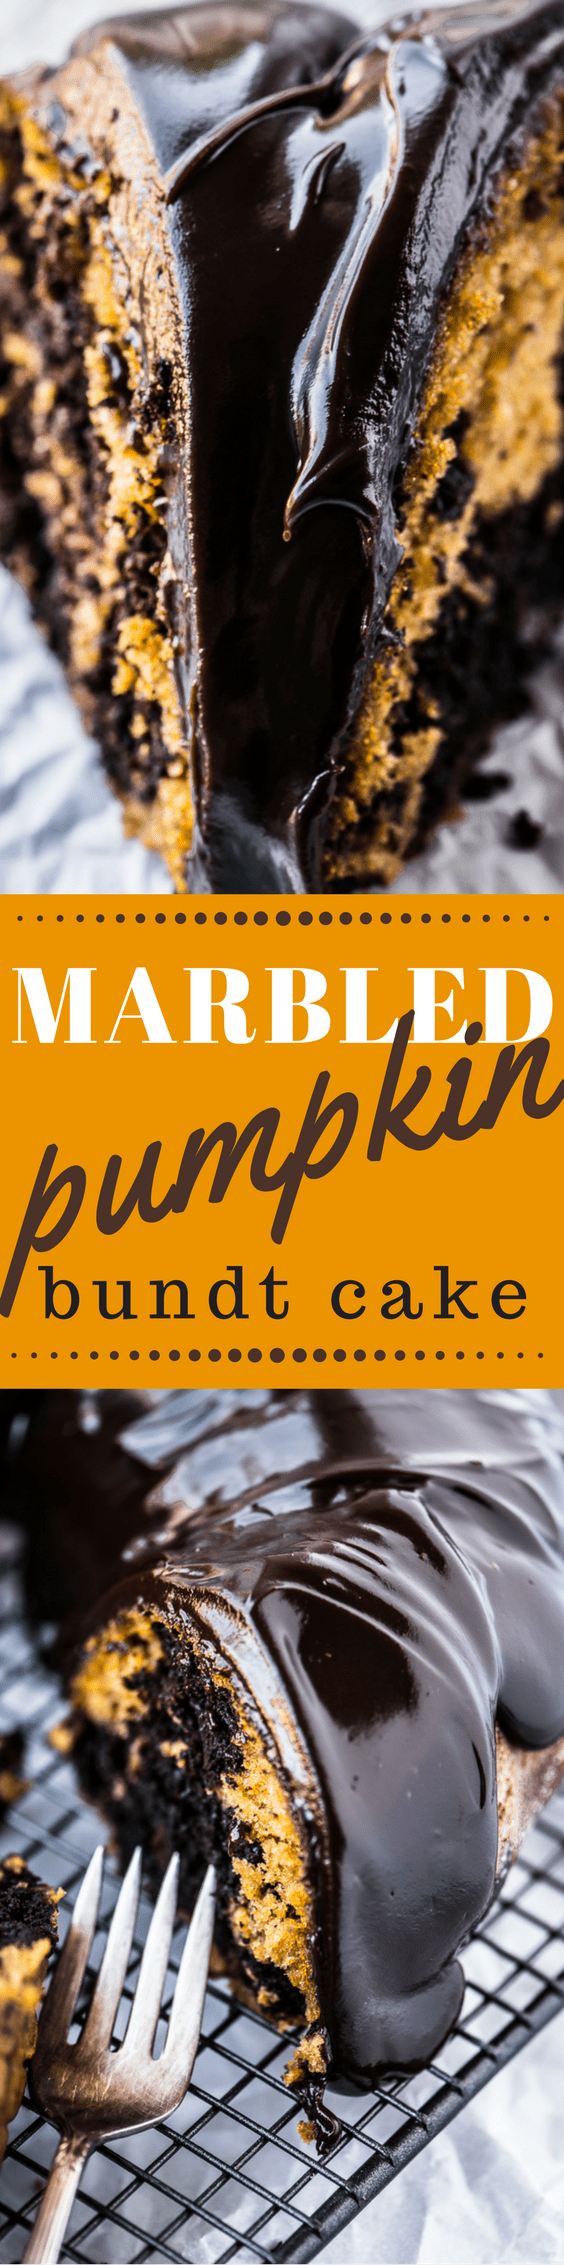 Marbled Pumpkin Bundt Cake is the ultimate Fall indulgence! ~ theviewfromgreatisland.com